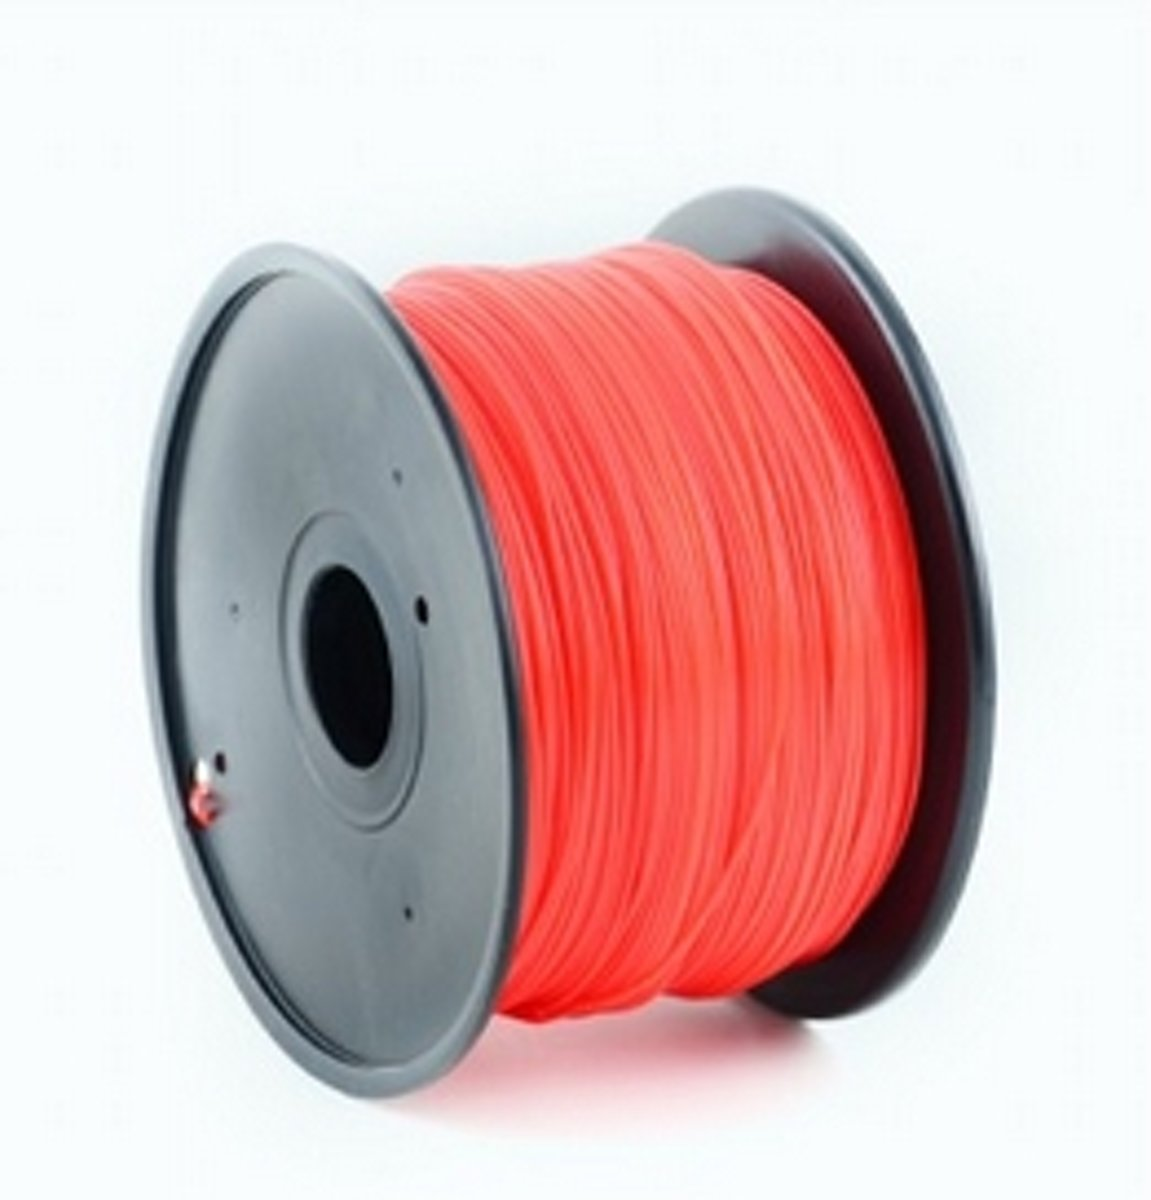 Gembird3 3DP-PLA1.75-01-R - Filament PLA, 1.75 mm, rood